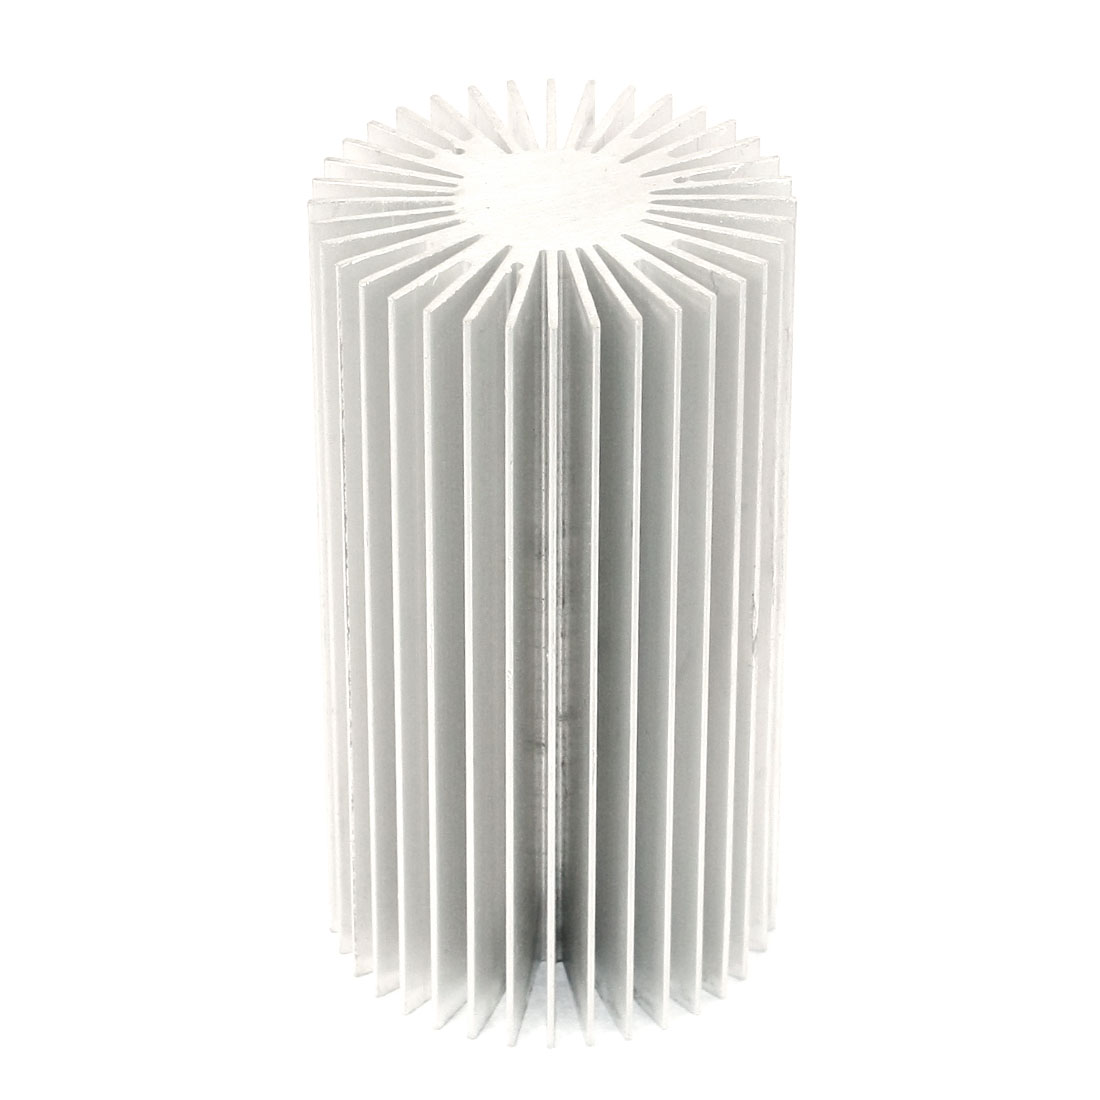 55mm x 100mm Cylinder 10W High Power LED Heatsink Aluminium Cooling Fin